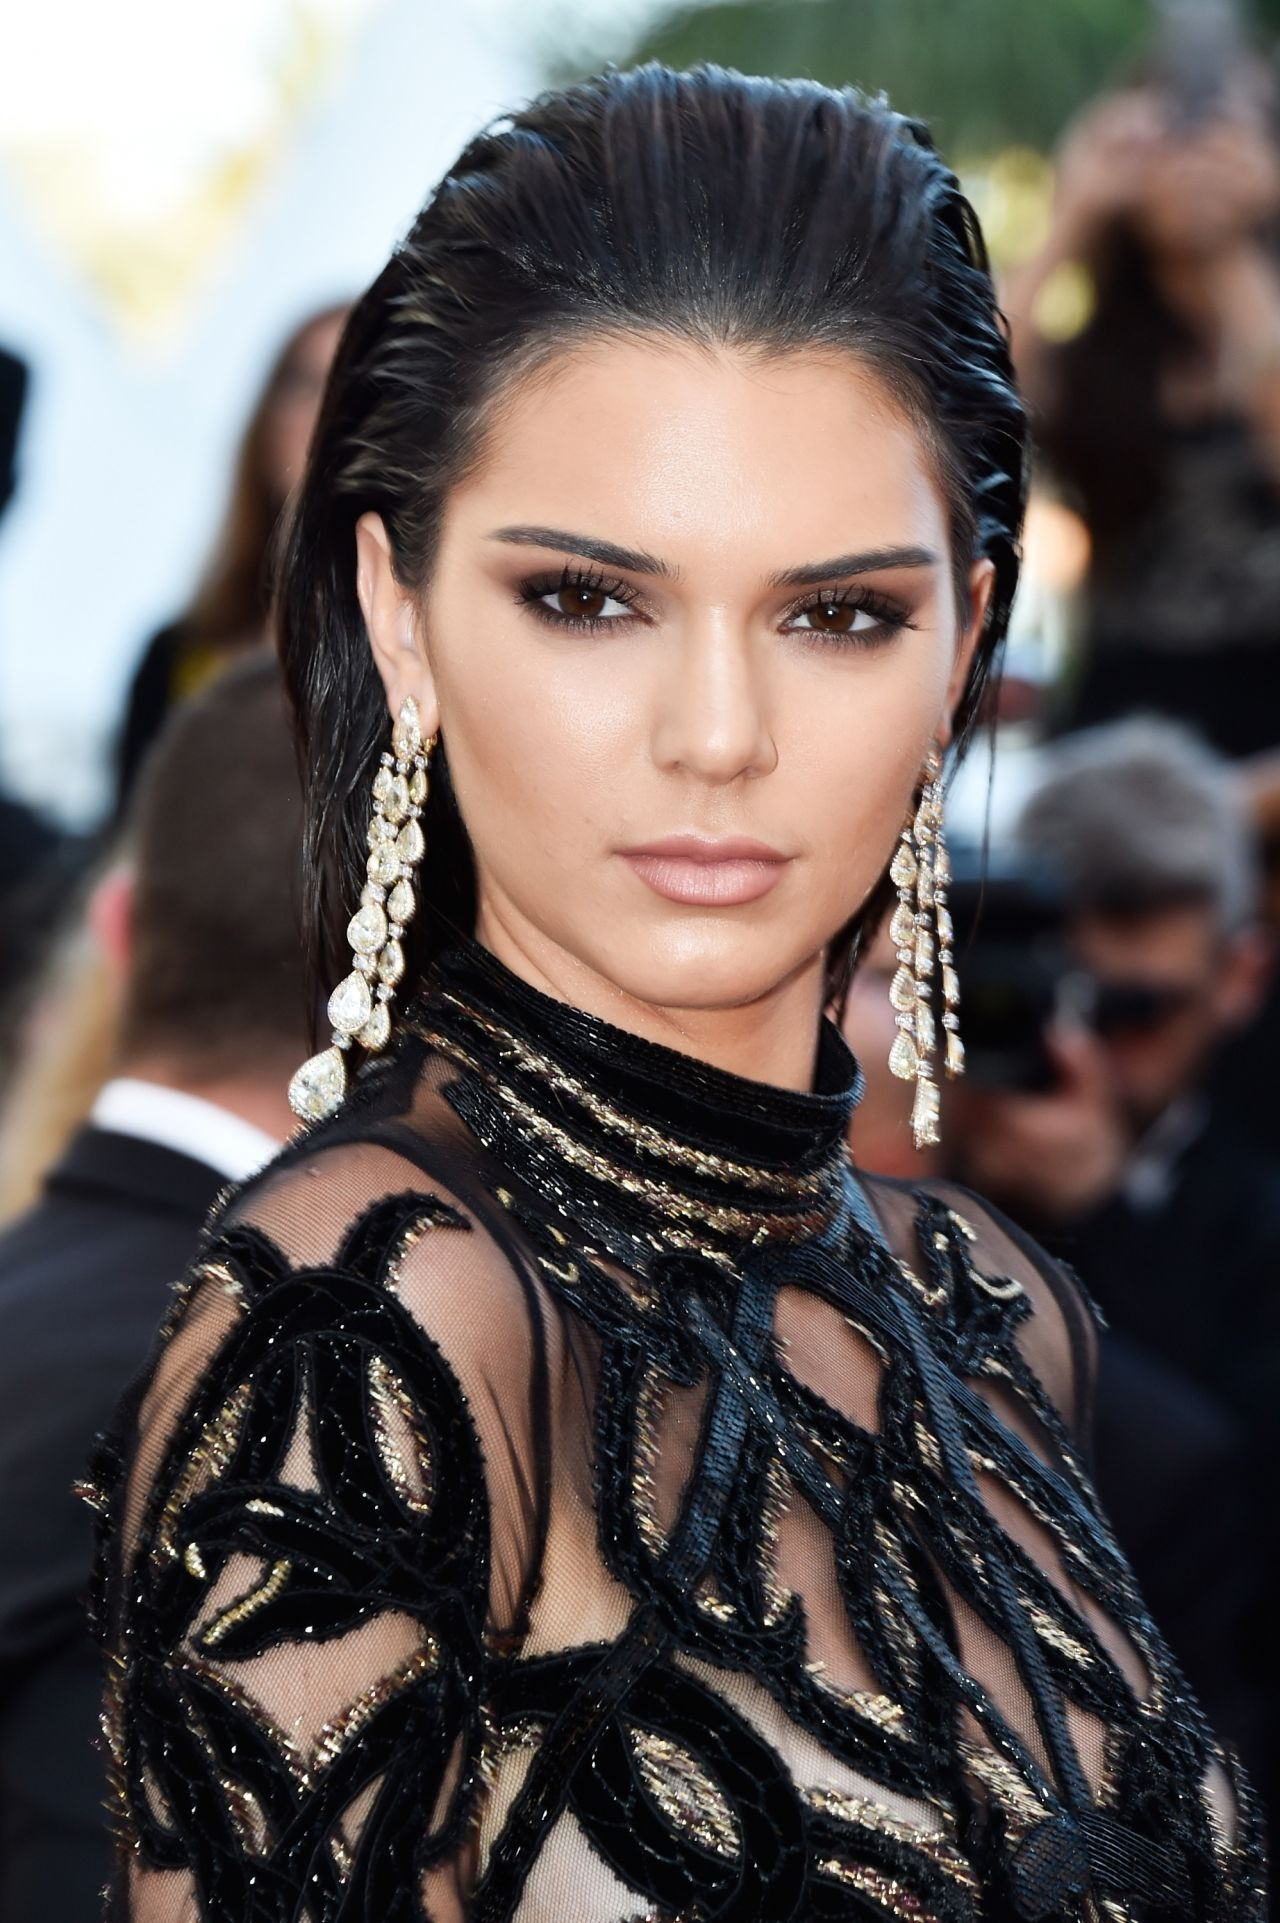 Kendall Jenner From The Land Of The Moon Mal De Pierres Premiere Cannes Film Festival 5